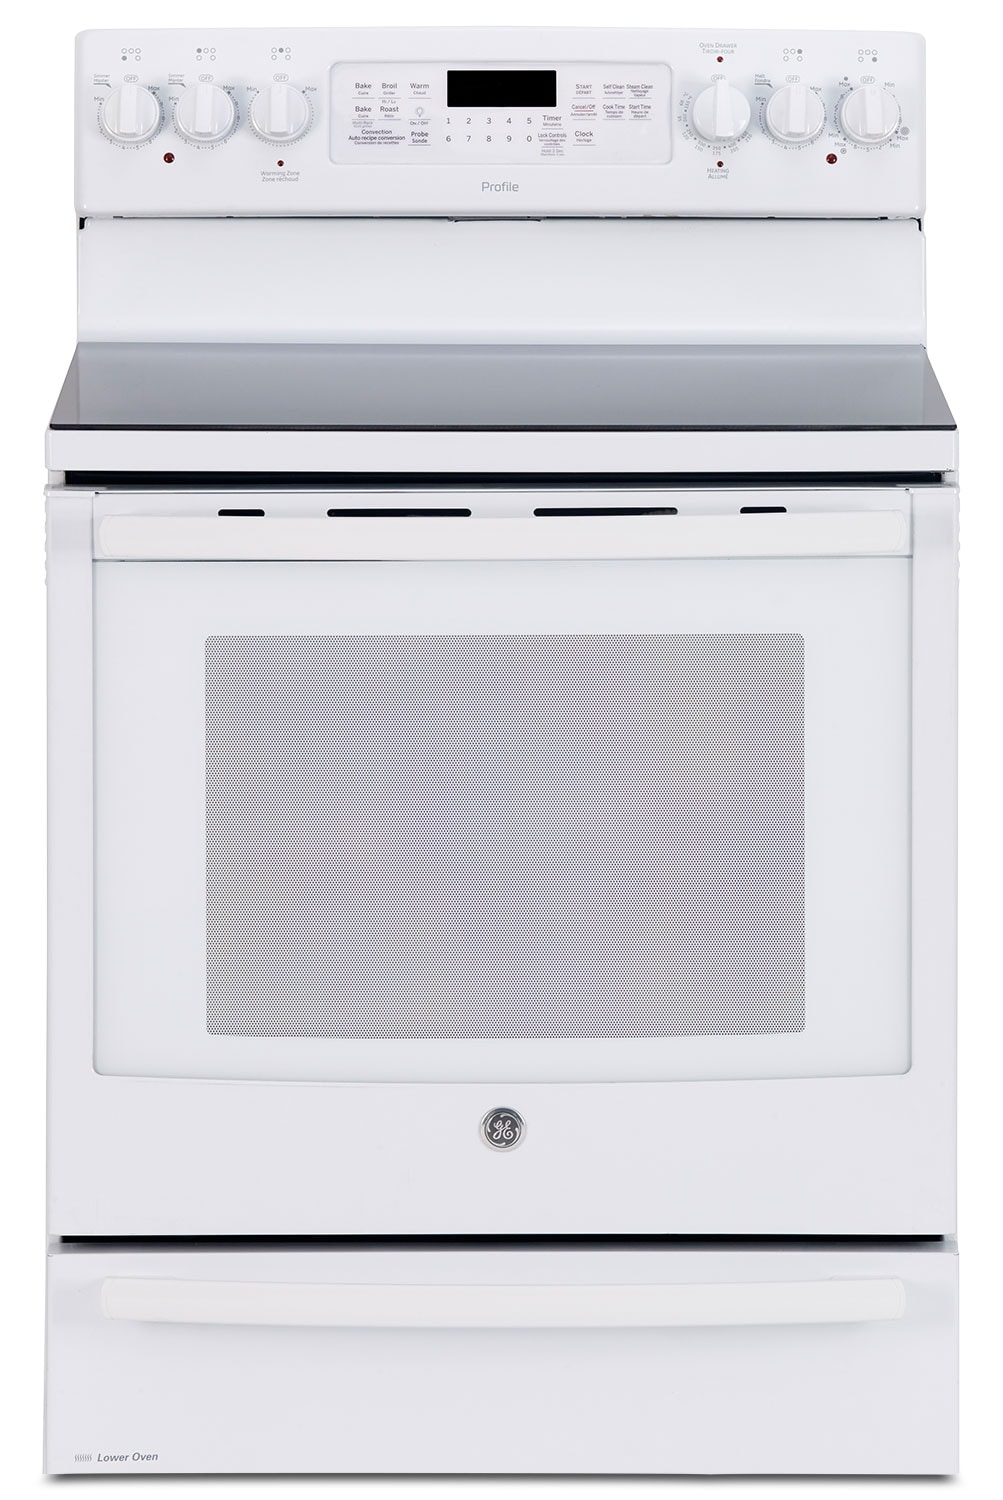 GE 6.2 Cu. Ft. Freestanding Electric Range with Baking Drawer – PCB985DKWW